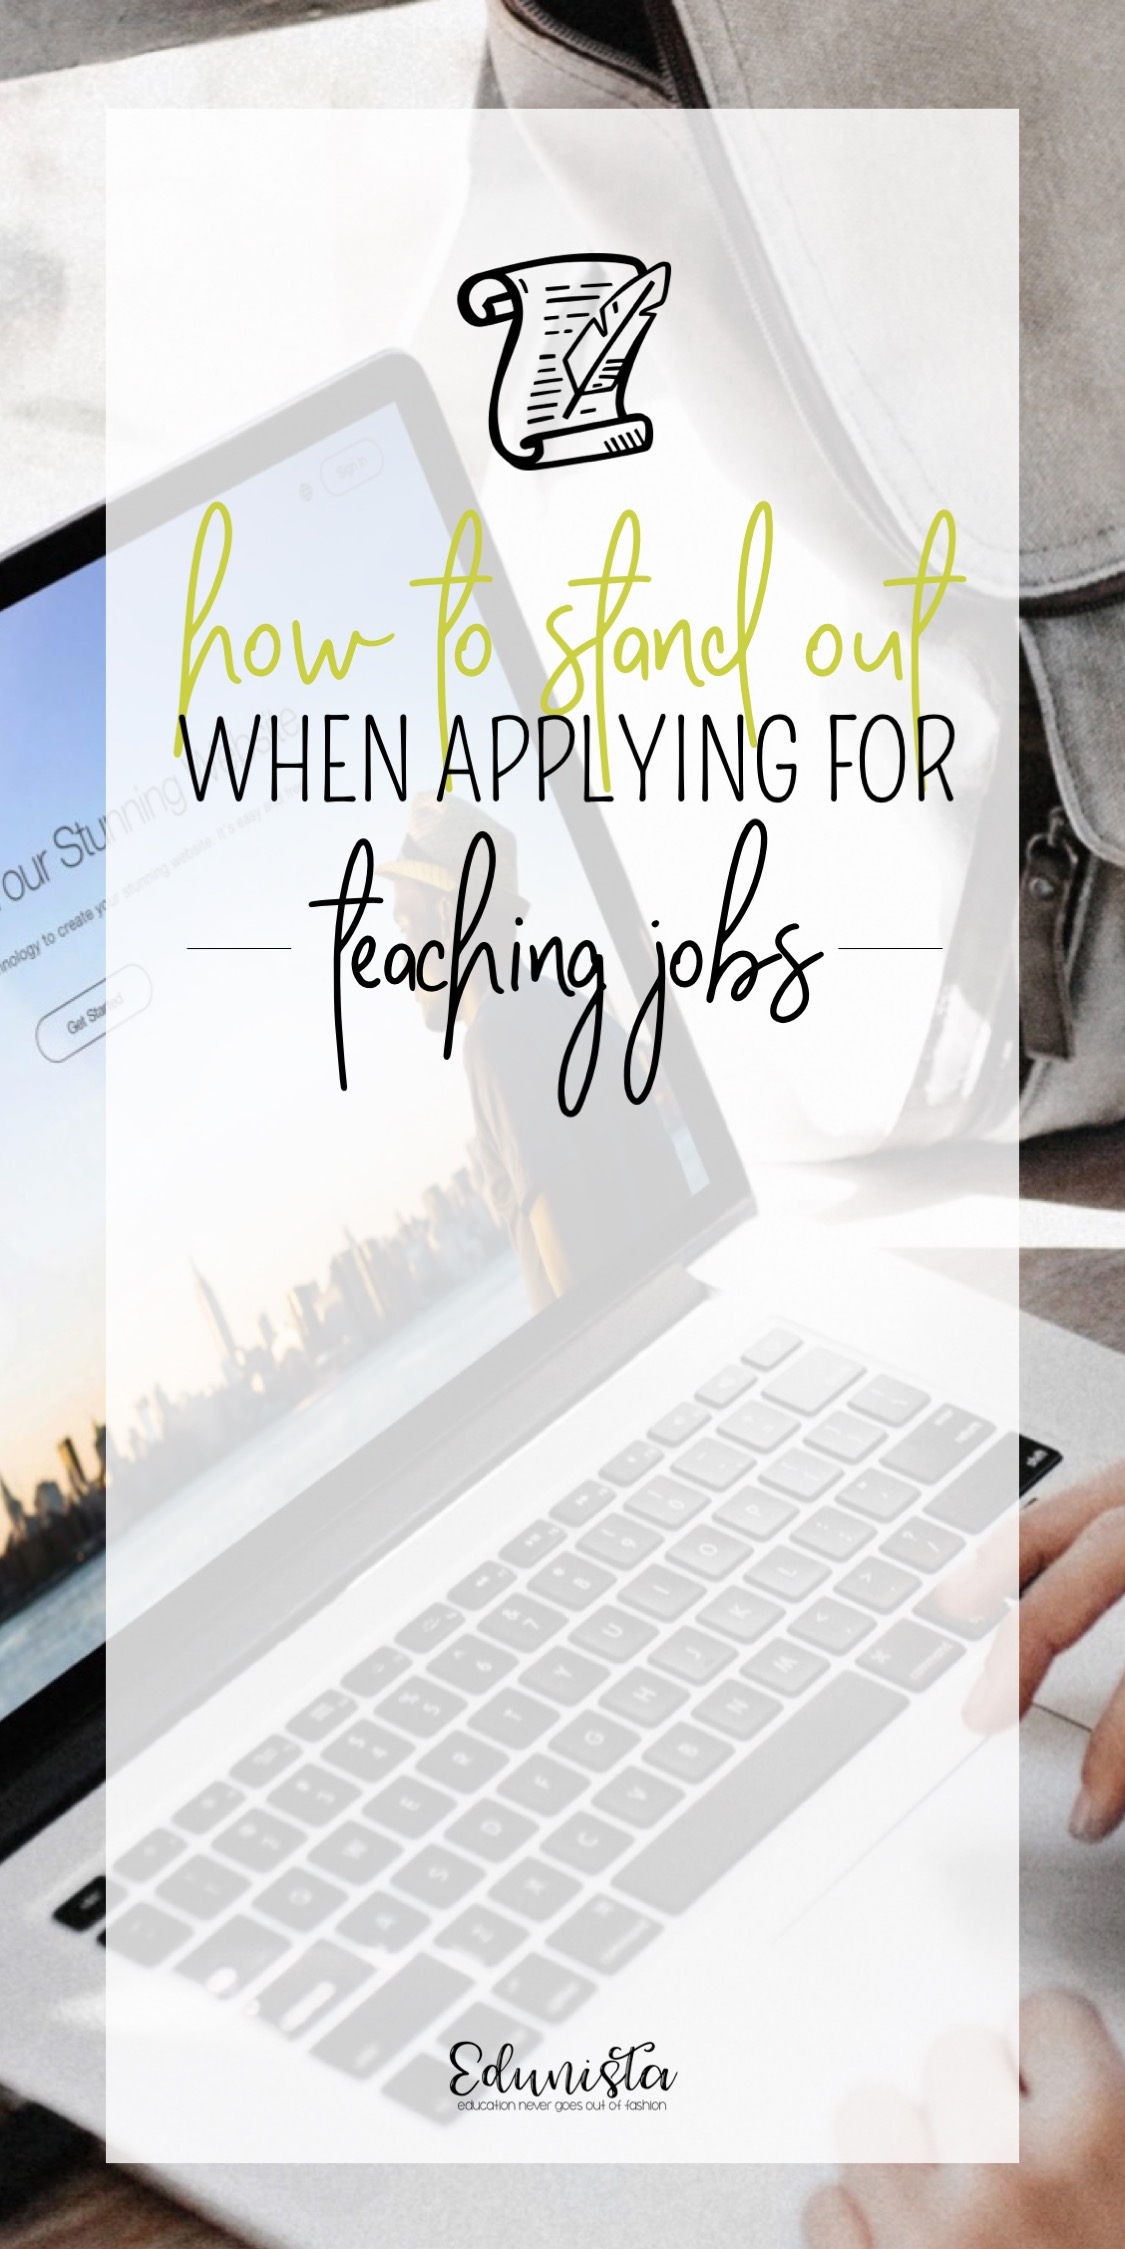 I HATE applying for teaching jobs! It's exhausting, frustrating, and can feel endless! The key to getting noticed is making yourself stand out. Do something different that separates you from the pack! A portfolio/CV website can make all the difference. This is a great guide for how to set up a website that will get you noticed and show your future principal just how amazing you are!